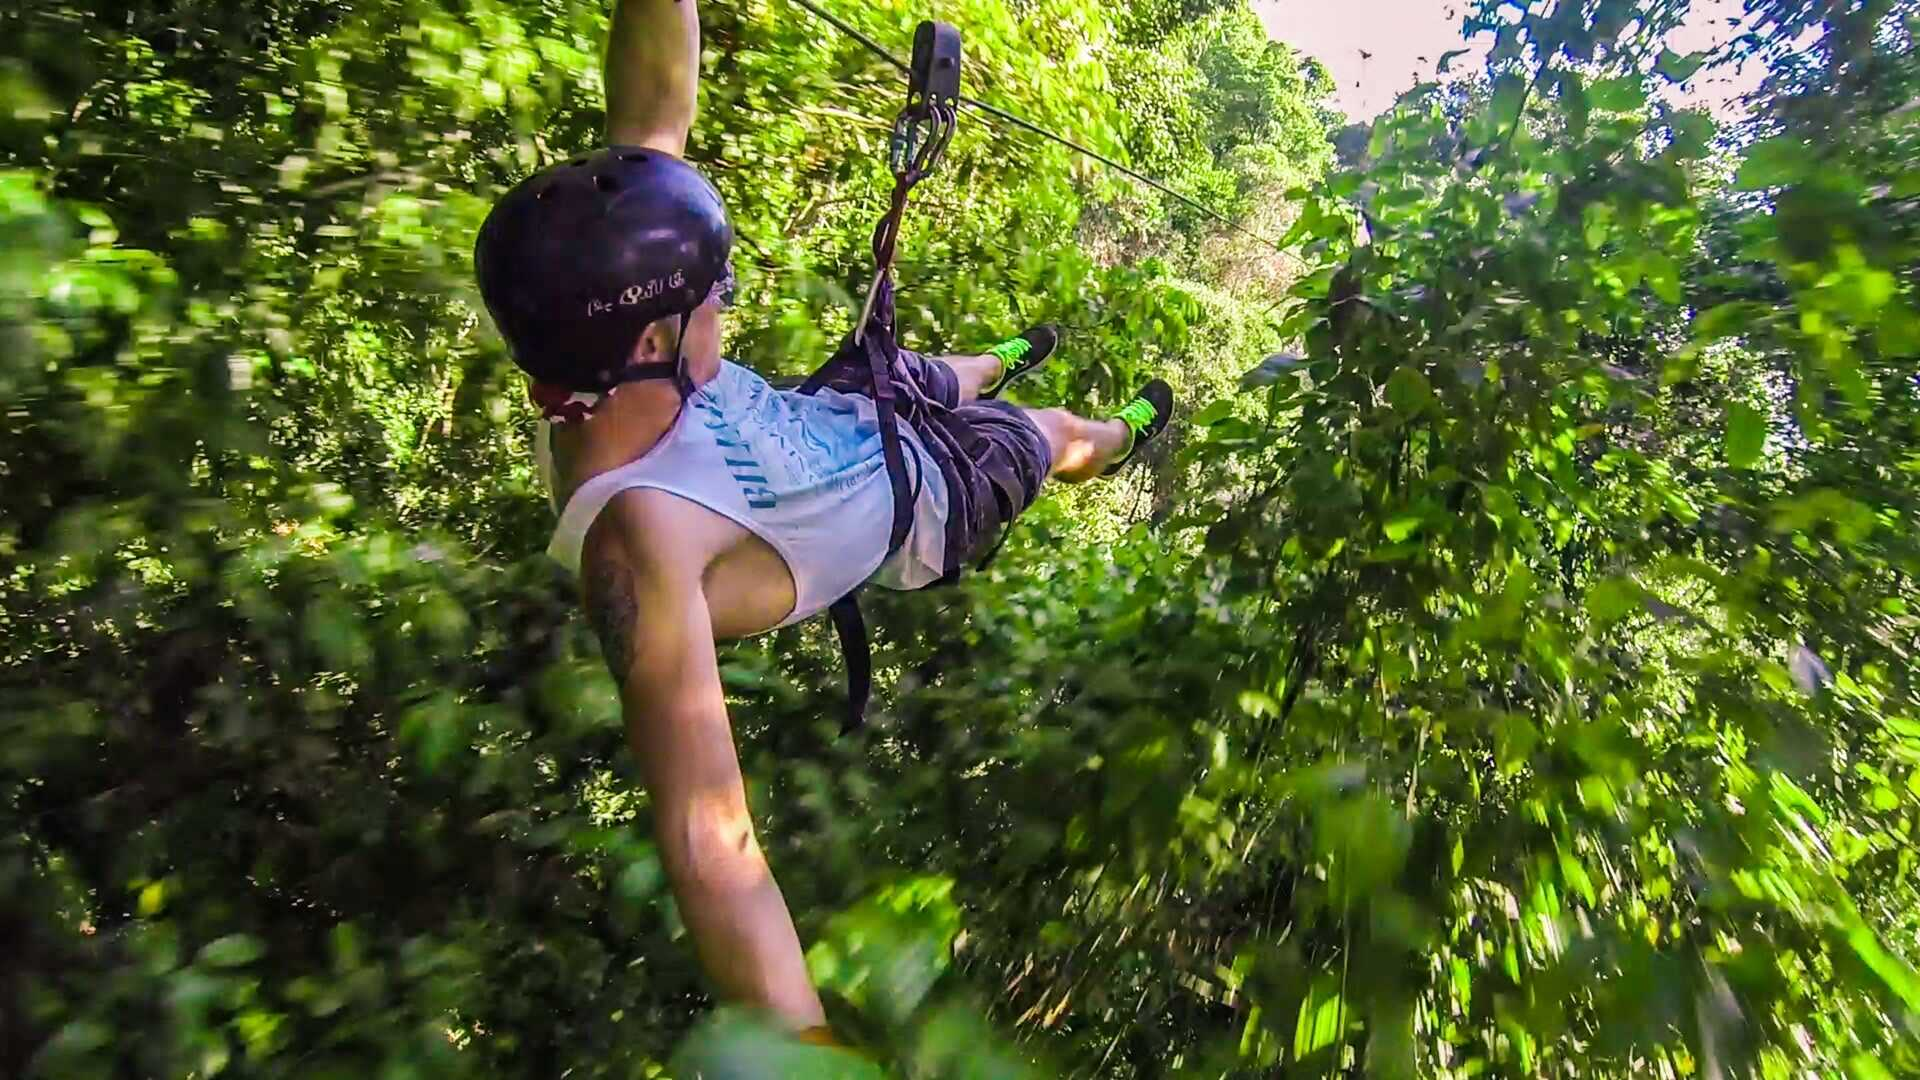 ZIPLINE - WHEN YOUR BODY AND MIND ARE FREE